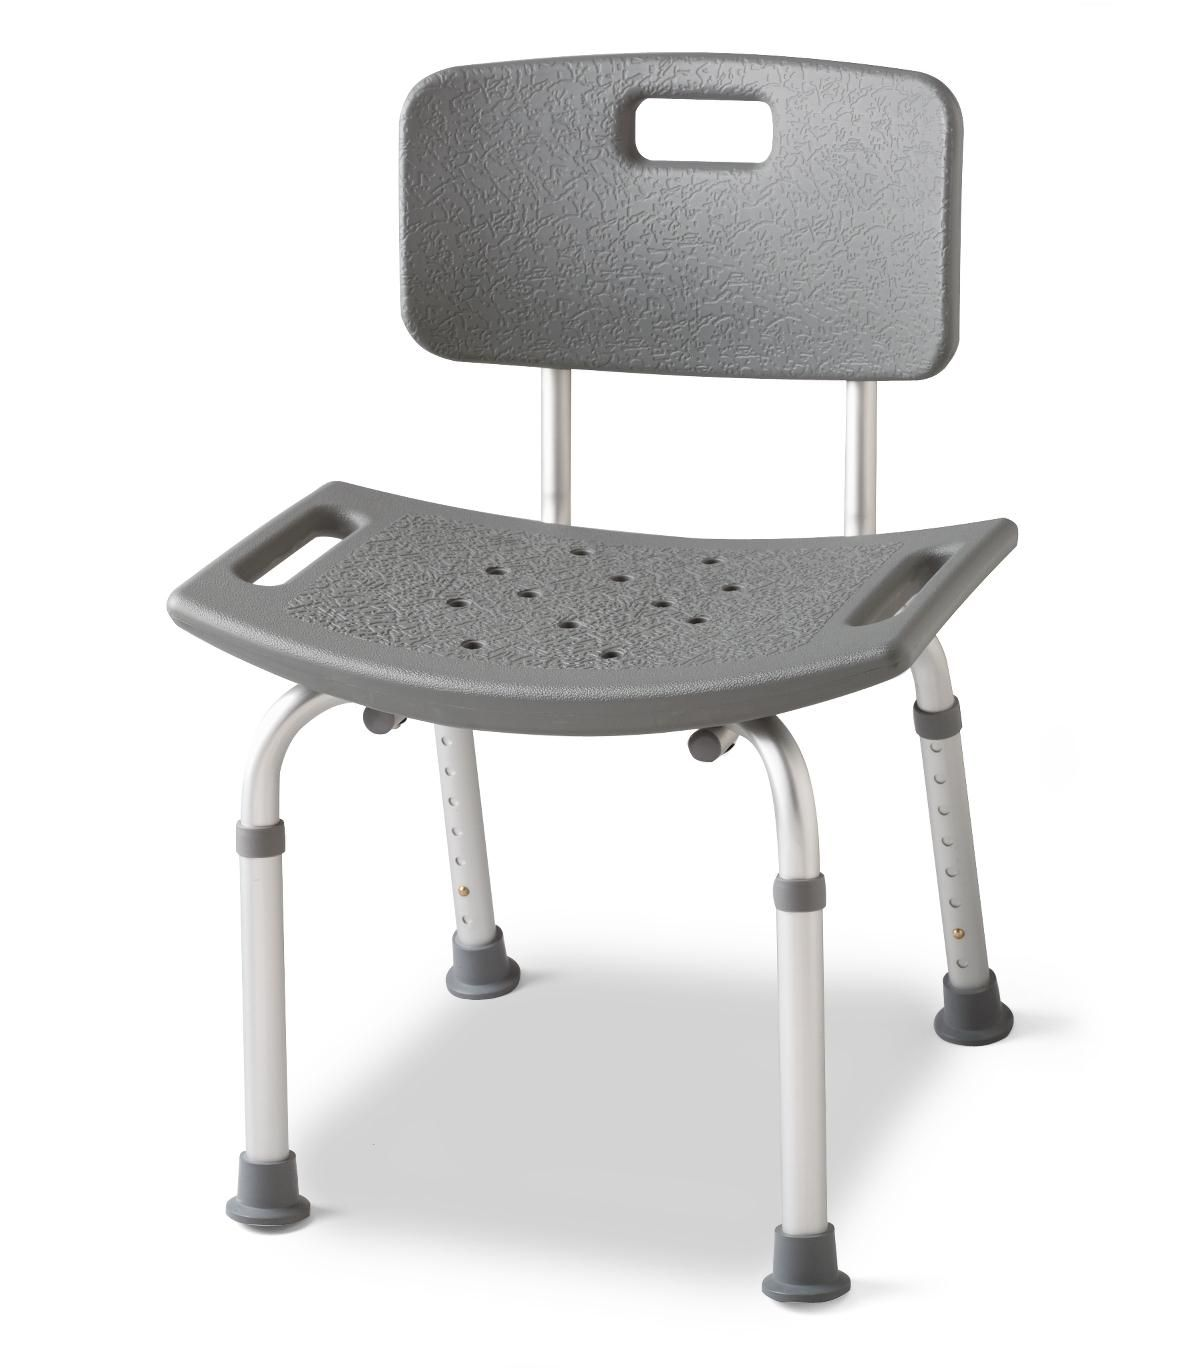 Bath seat for elderly, handicap shower seat, shower chairs for the ...